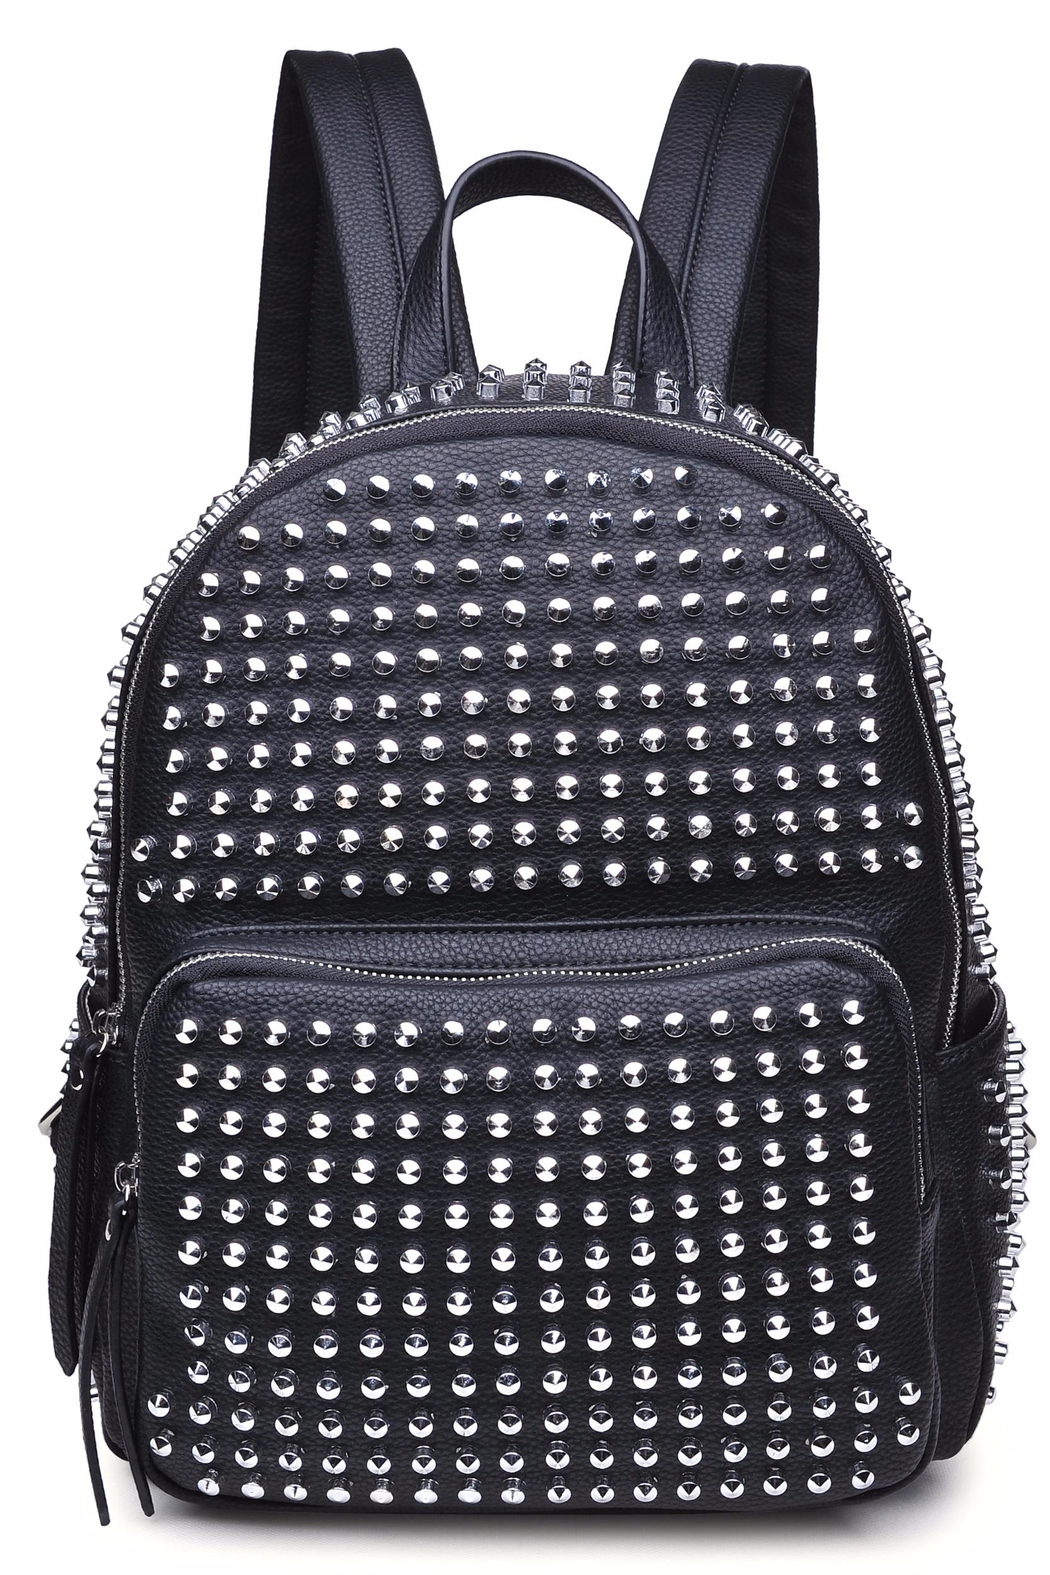 Urban Expressions Cosmos Studded Backpack - Front Cropped Image